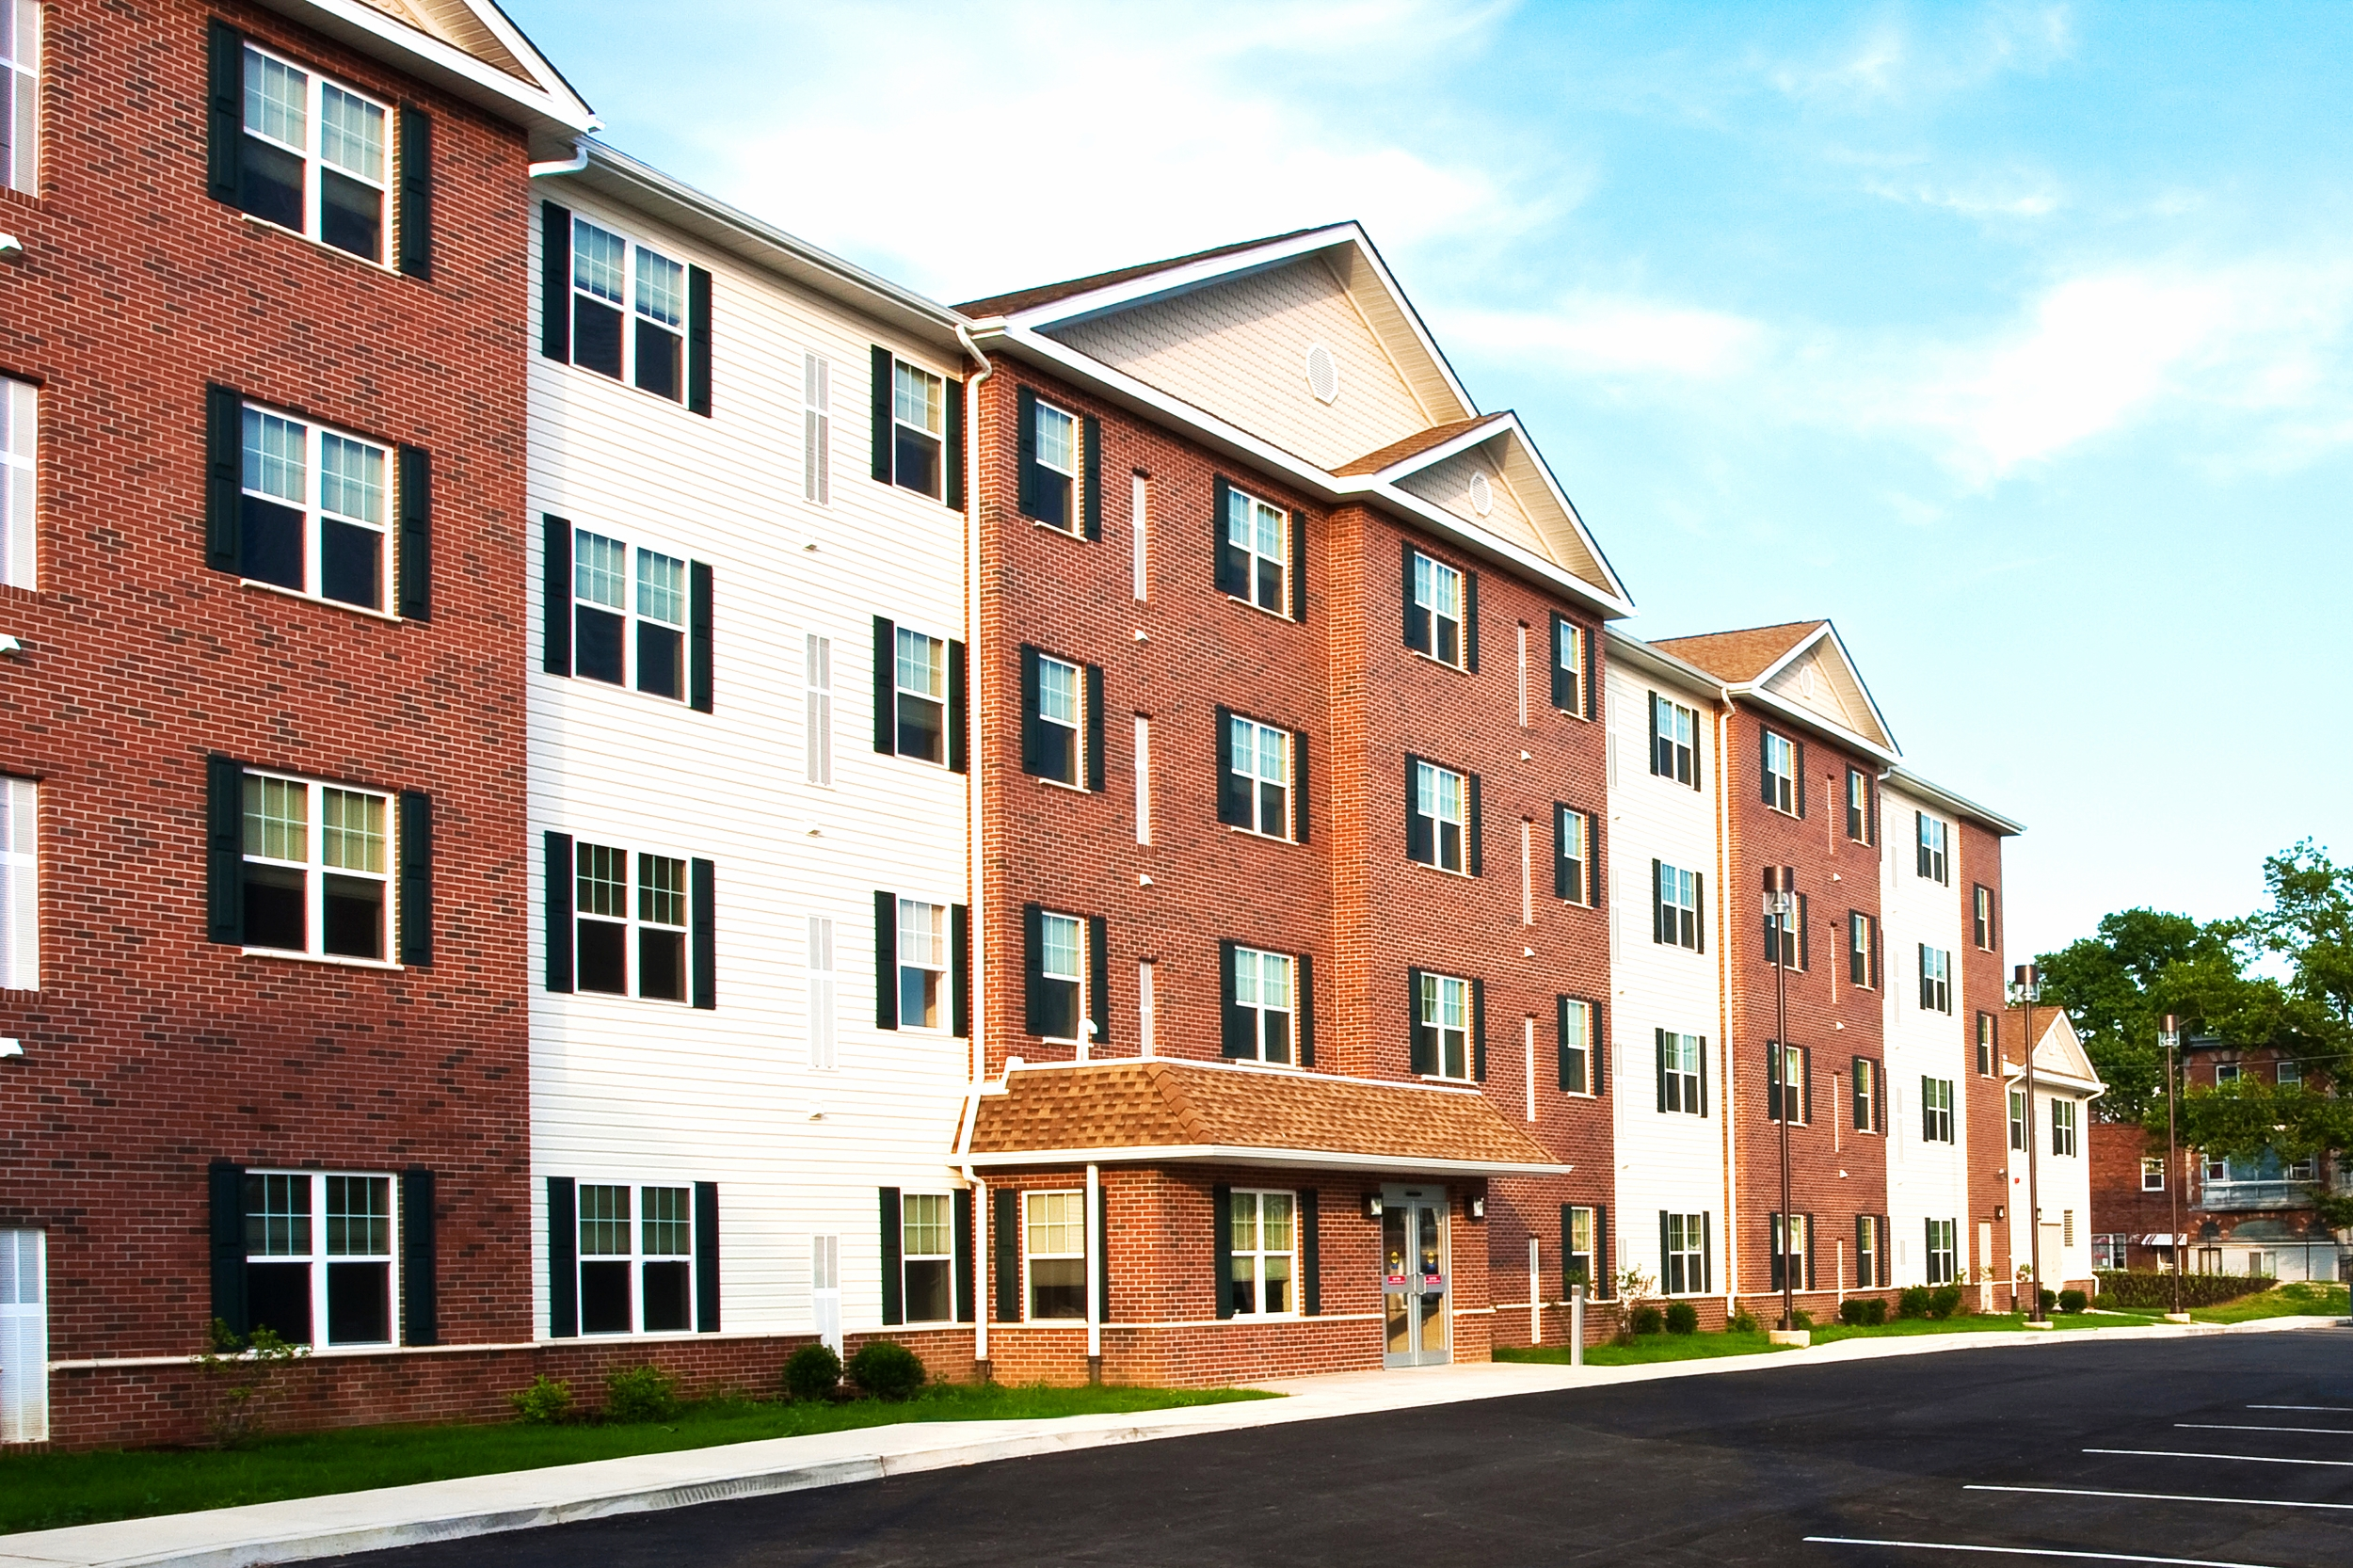 PASCHALL SENIOR HOUSING